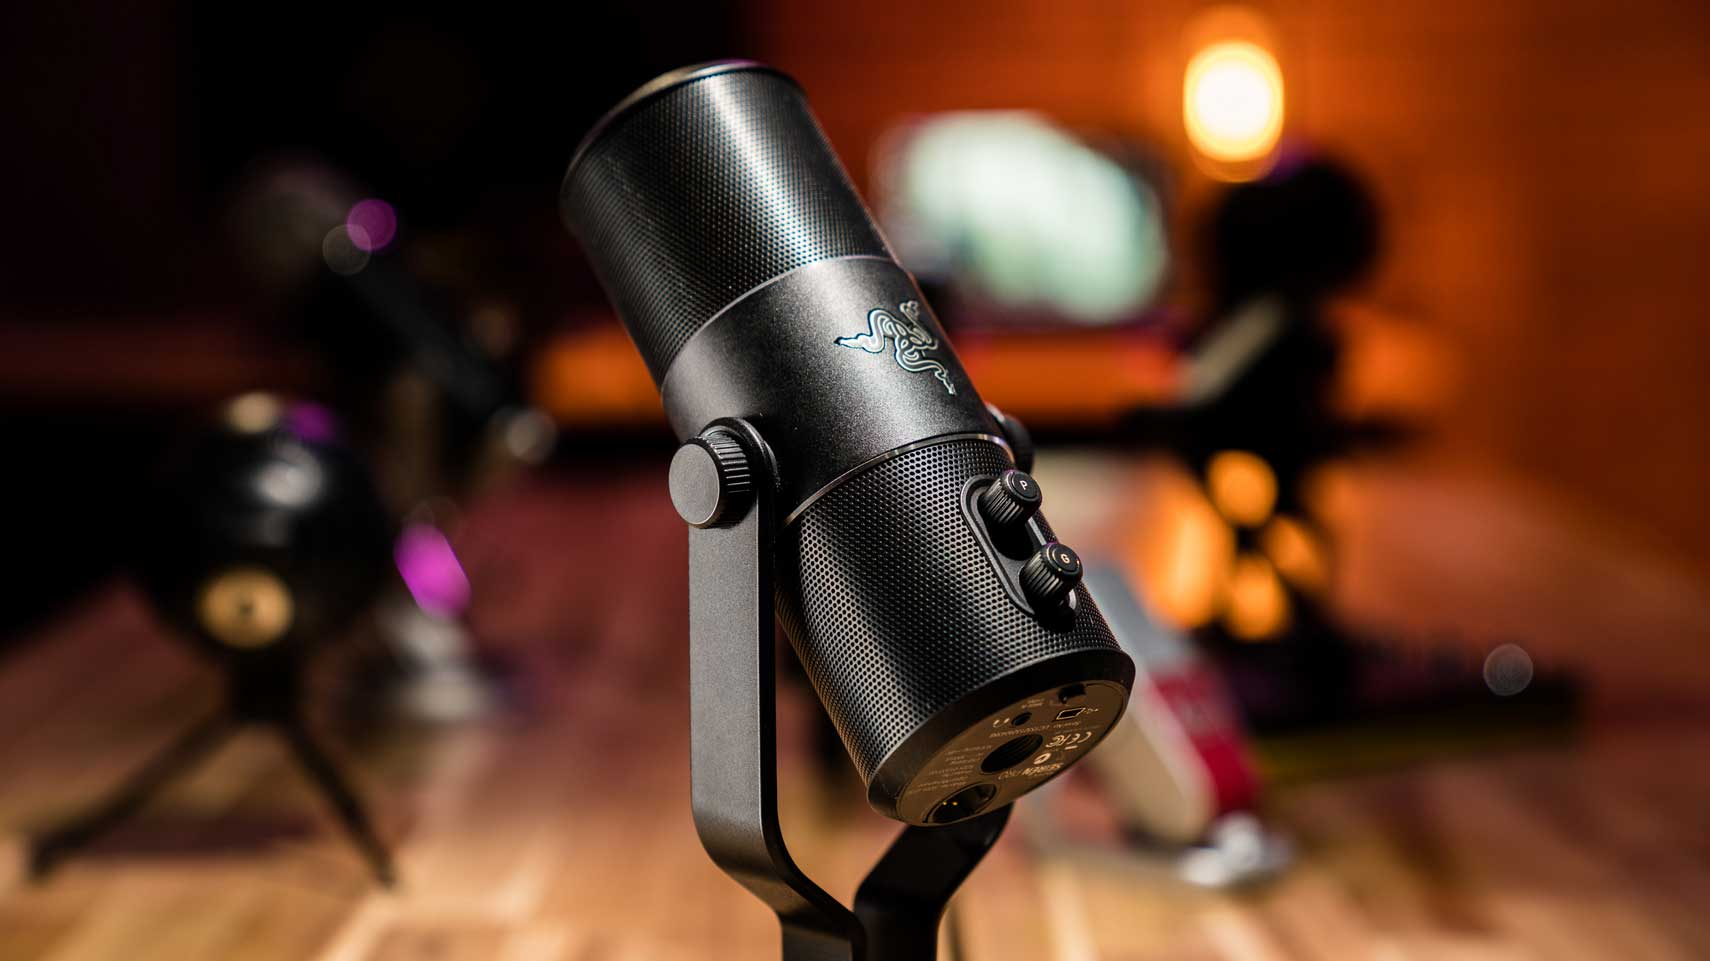 Best Budget Microphones For Streaming 2020